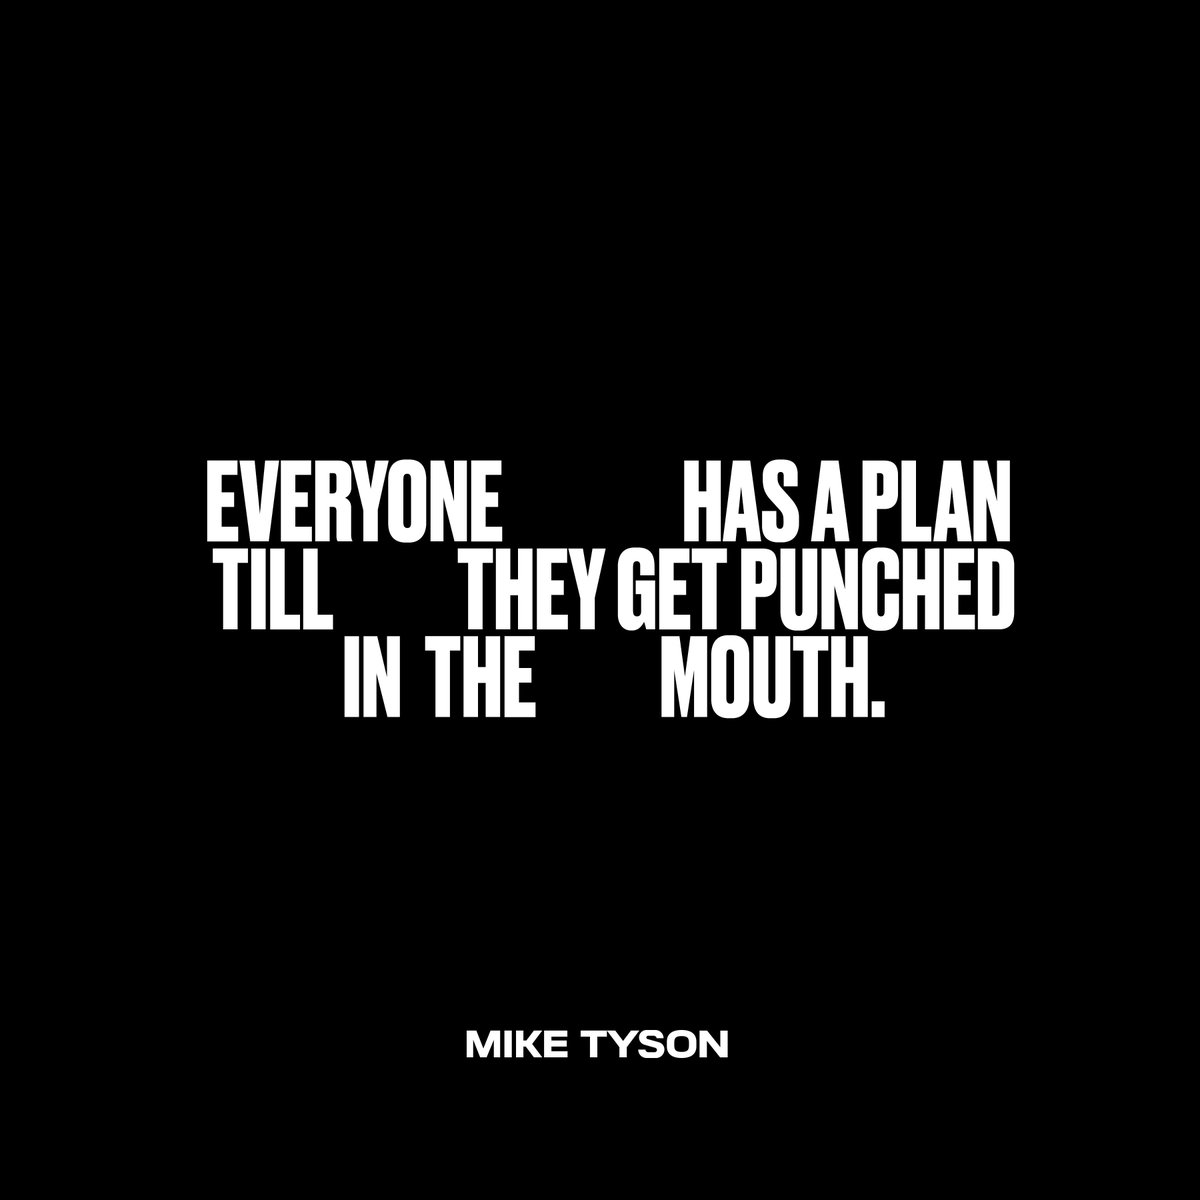 Everyone has a plan till they get punched in the mouth. #miketyson #vintagetyson https://t.co/yJgHgqxrkK